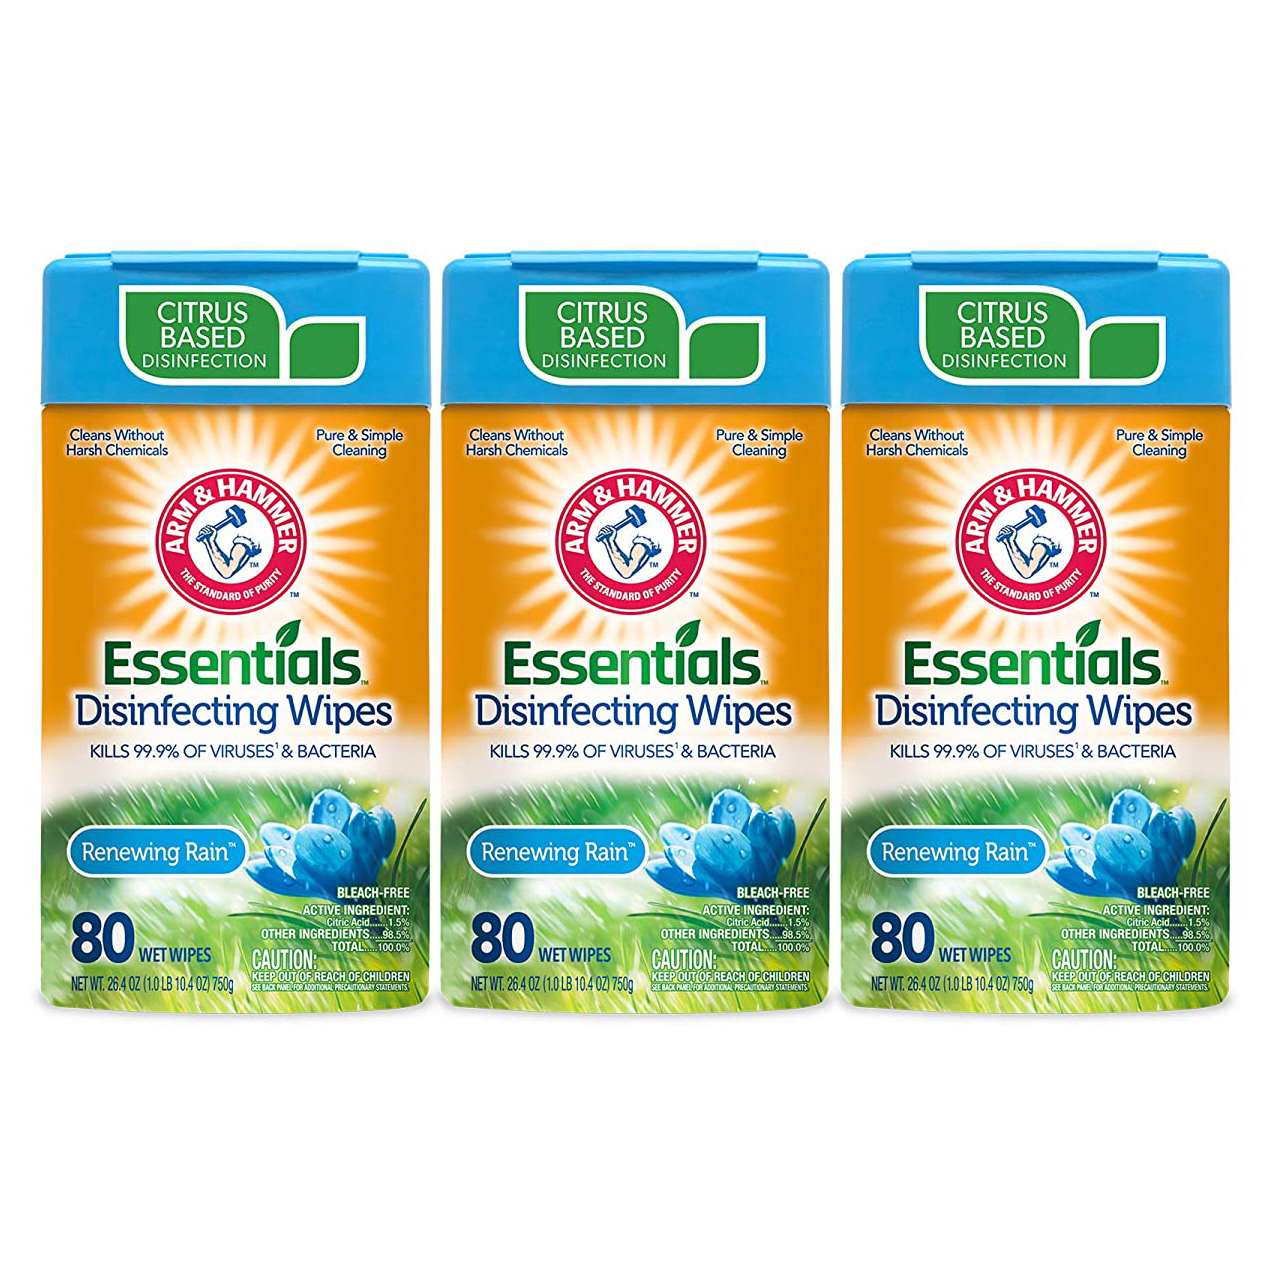 6 Clever Items (3/12/21) - Arm & Hammer Essentials Disinfecting Wipes